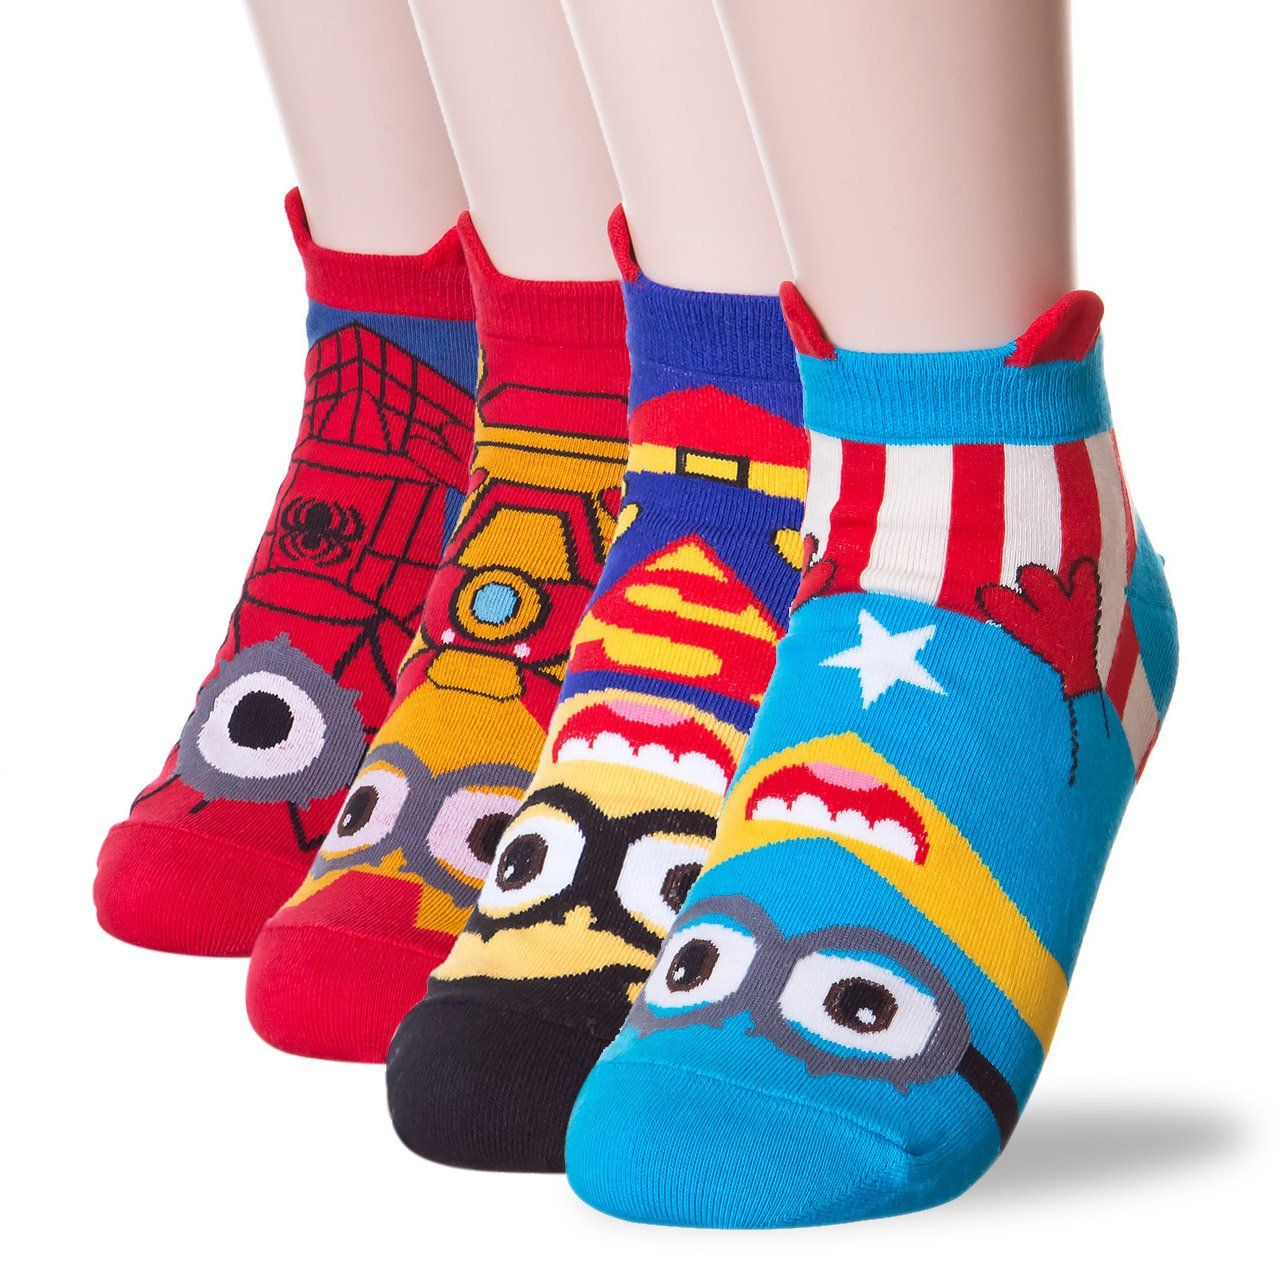 98c8159d246d Cartoon Character Socks Hero Series (Batman)  Amazon.co.uk  Clothing ...